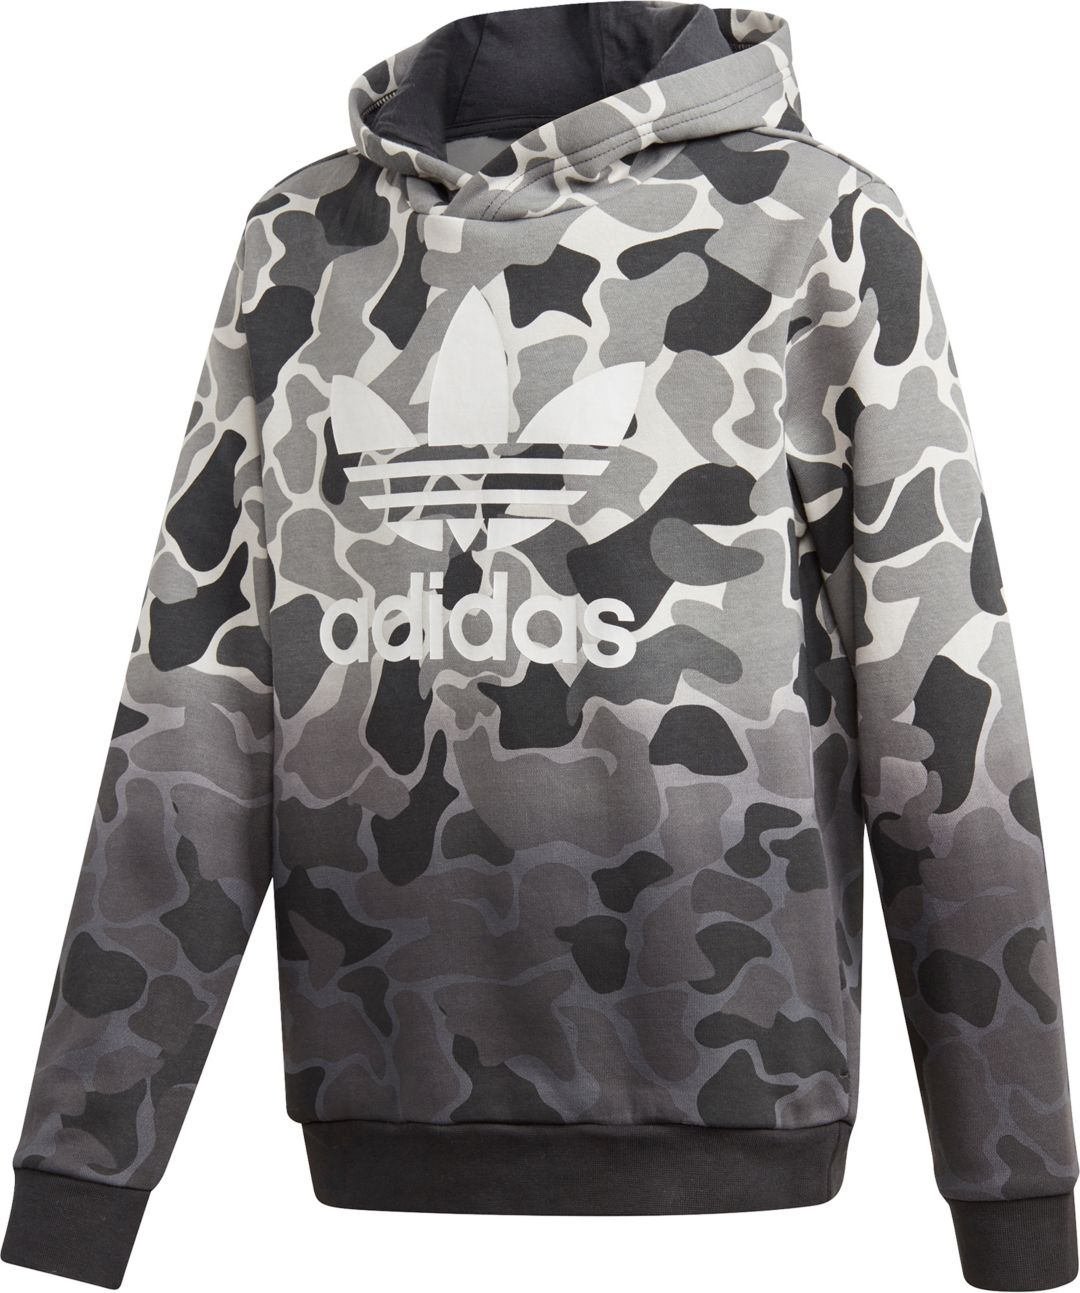 5782f518 adidas Originals Boys' Camo Trefoil Hoodie. noImageFound. Previous